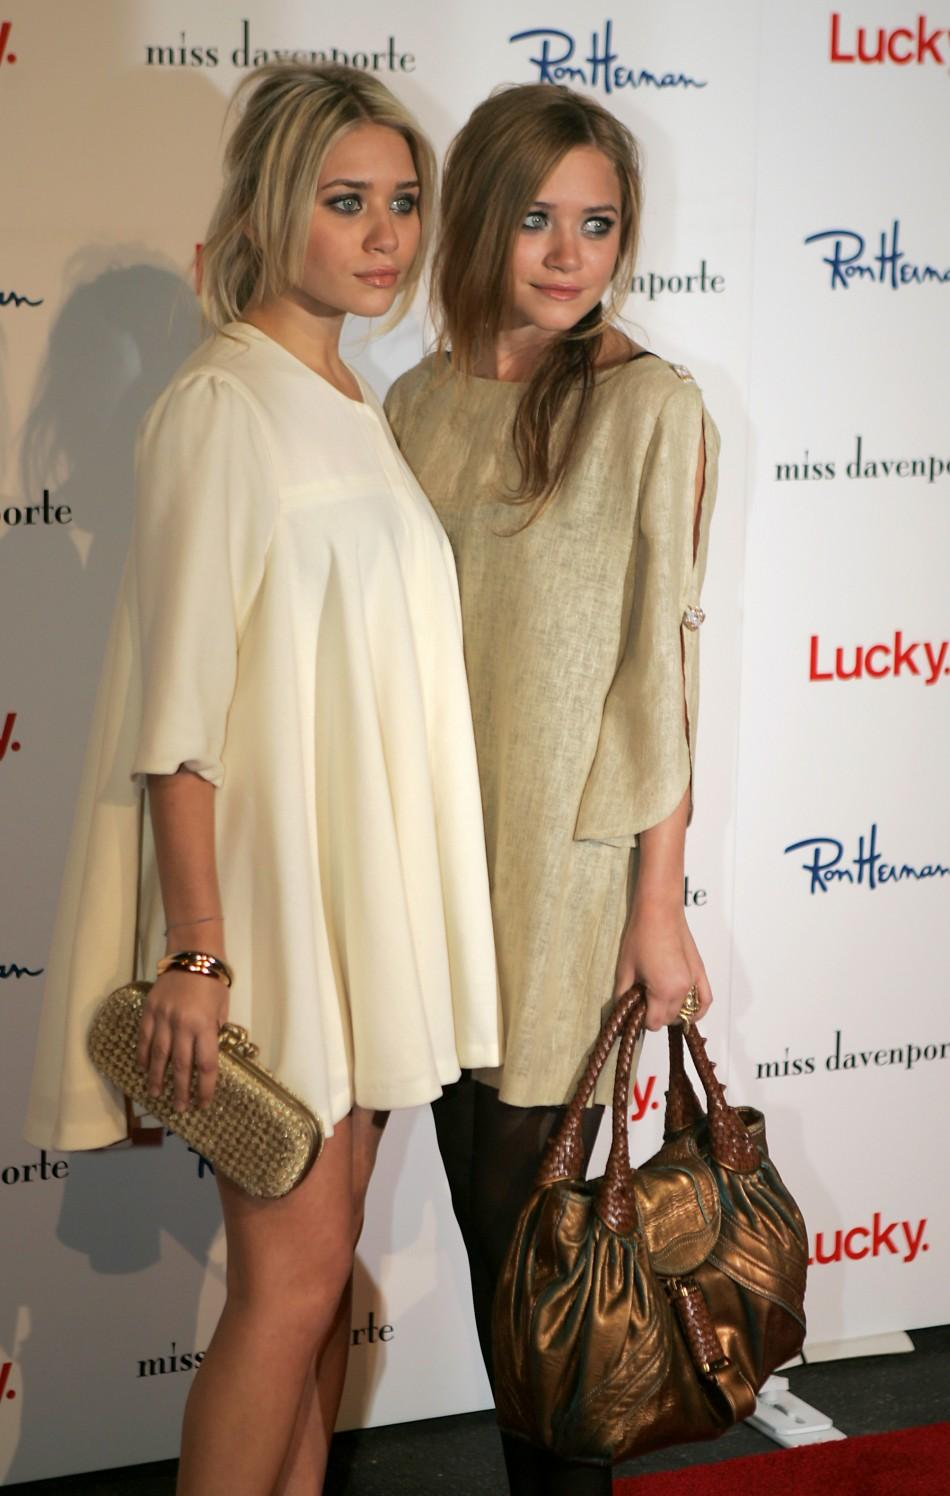 Ashley and Mary Kate Olsen arrive at the Miss Davenporte trunk show in Hollywood